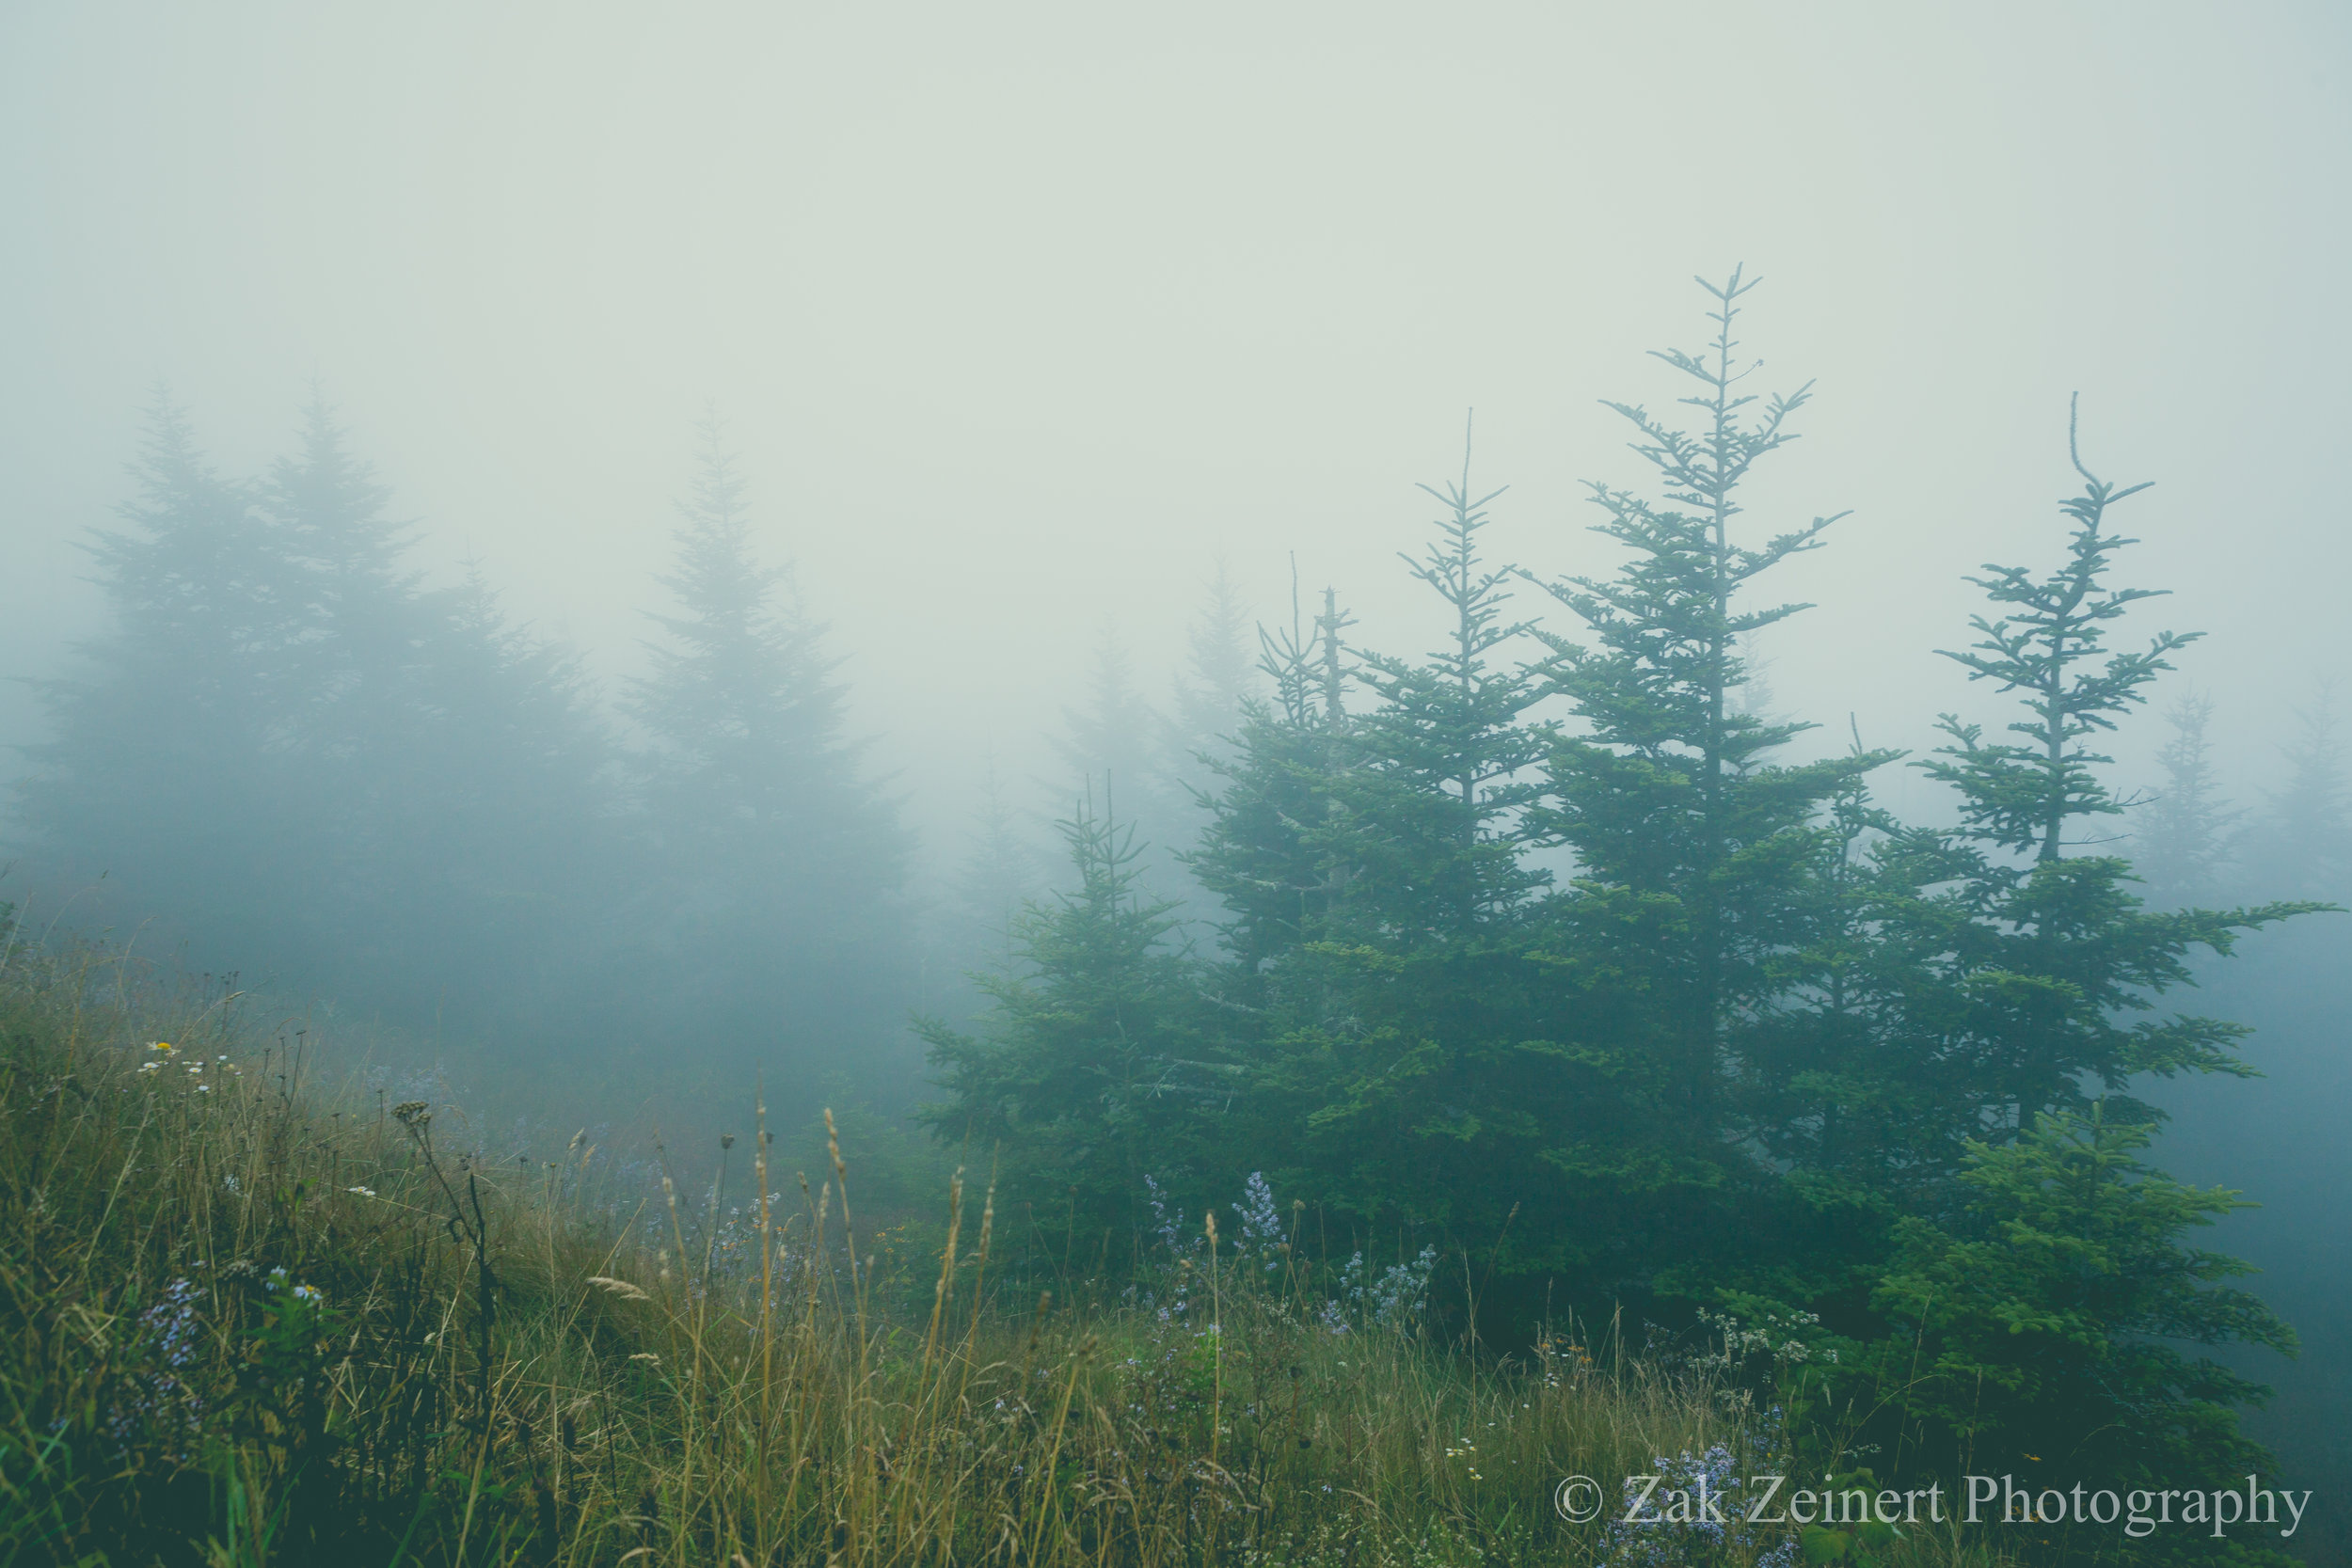 View from Clingman's Dome with the intense fog